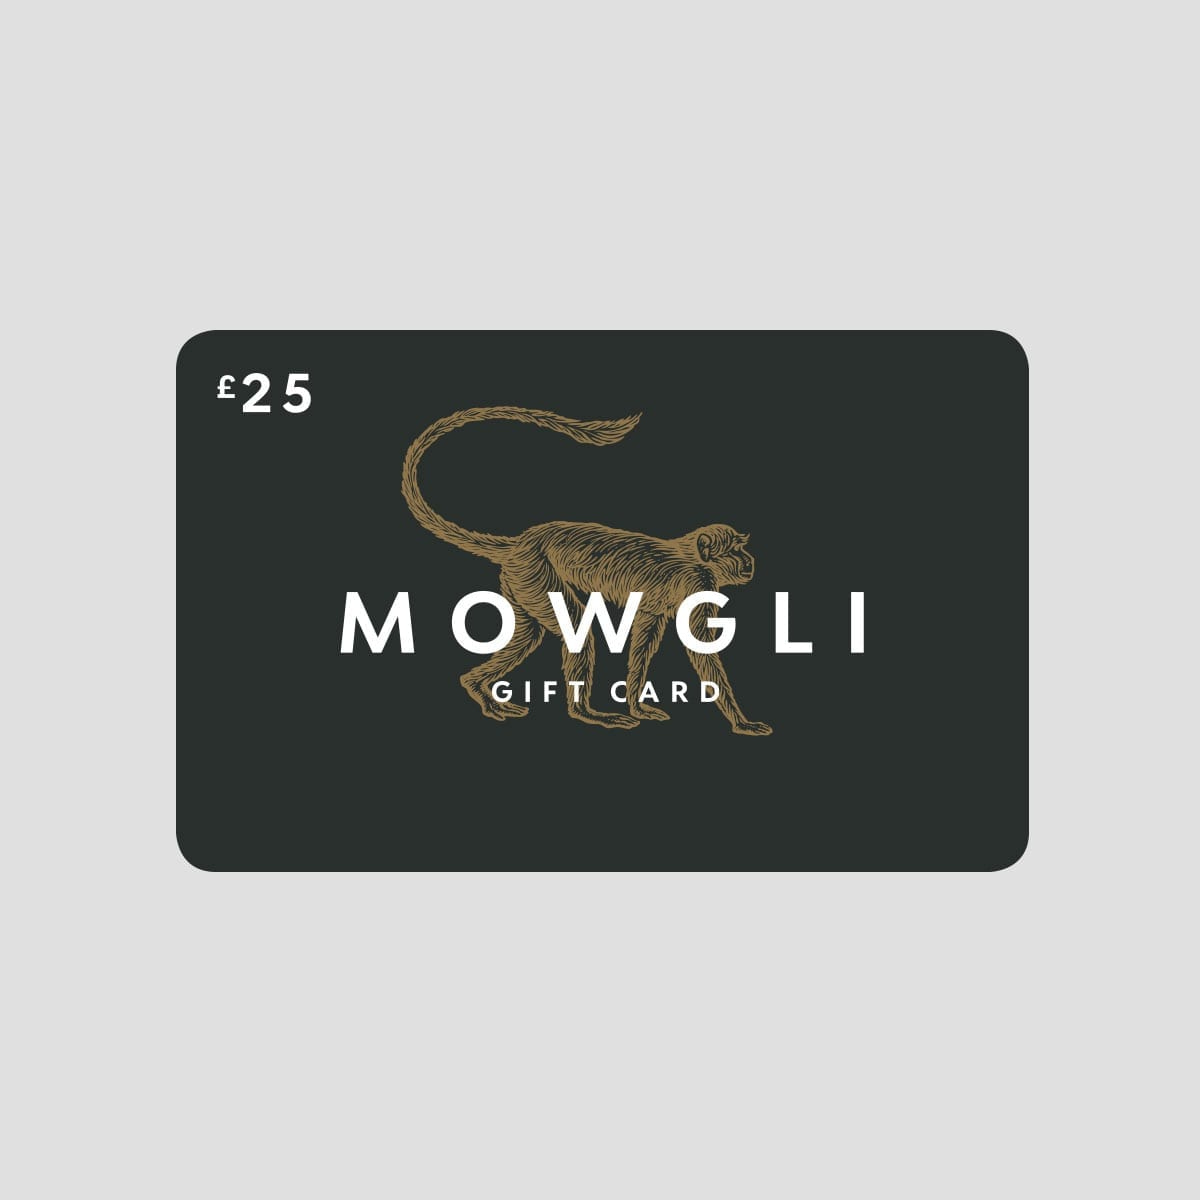 Gift cards negle Gallery